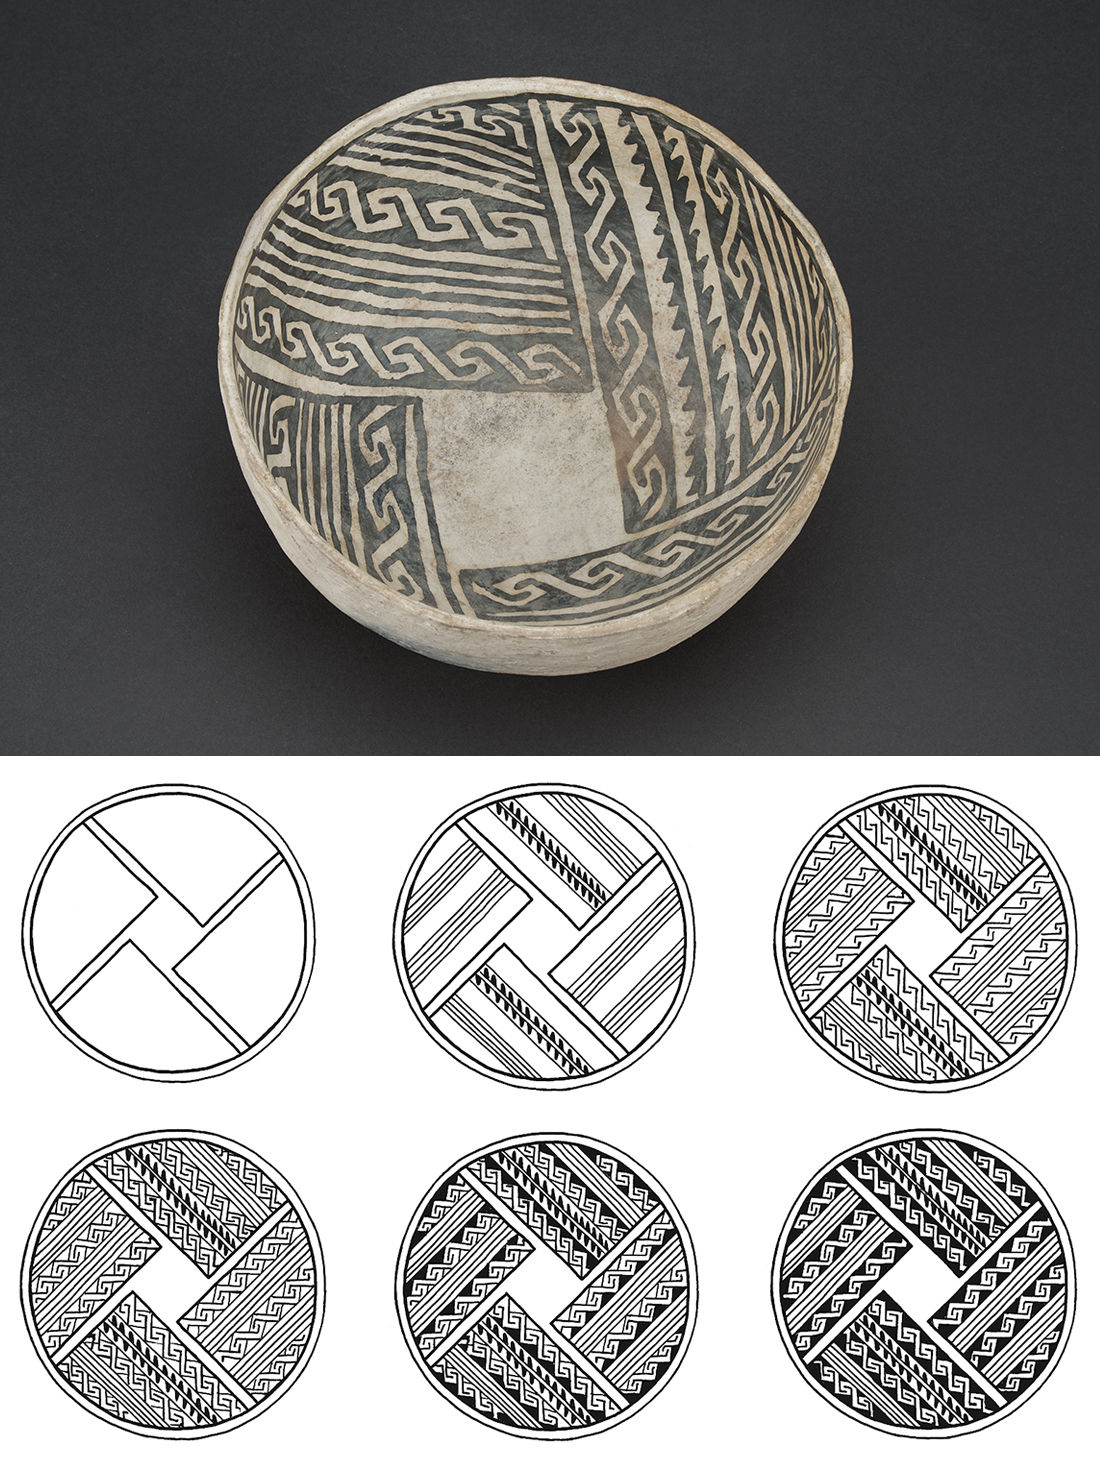 Painted Reflections: Isomeric Design in Ancestral Pueblo Pottery 2